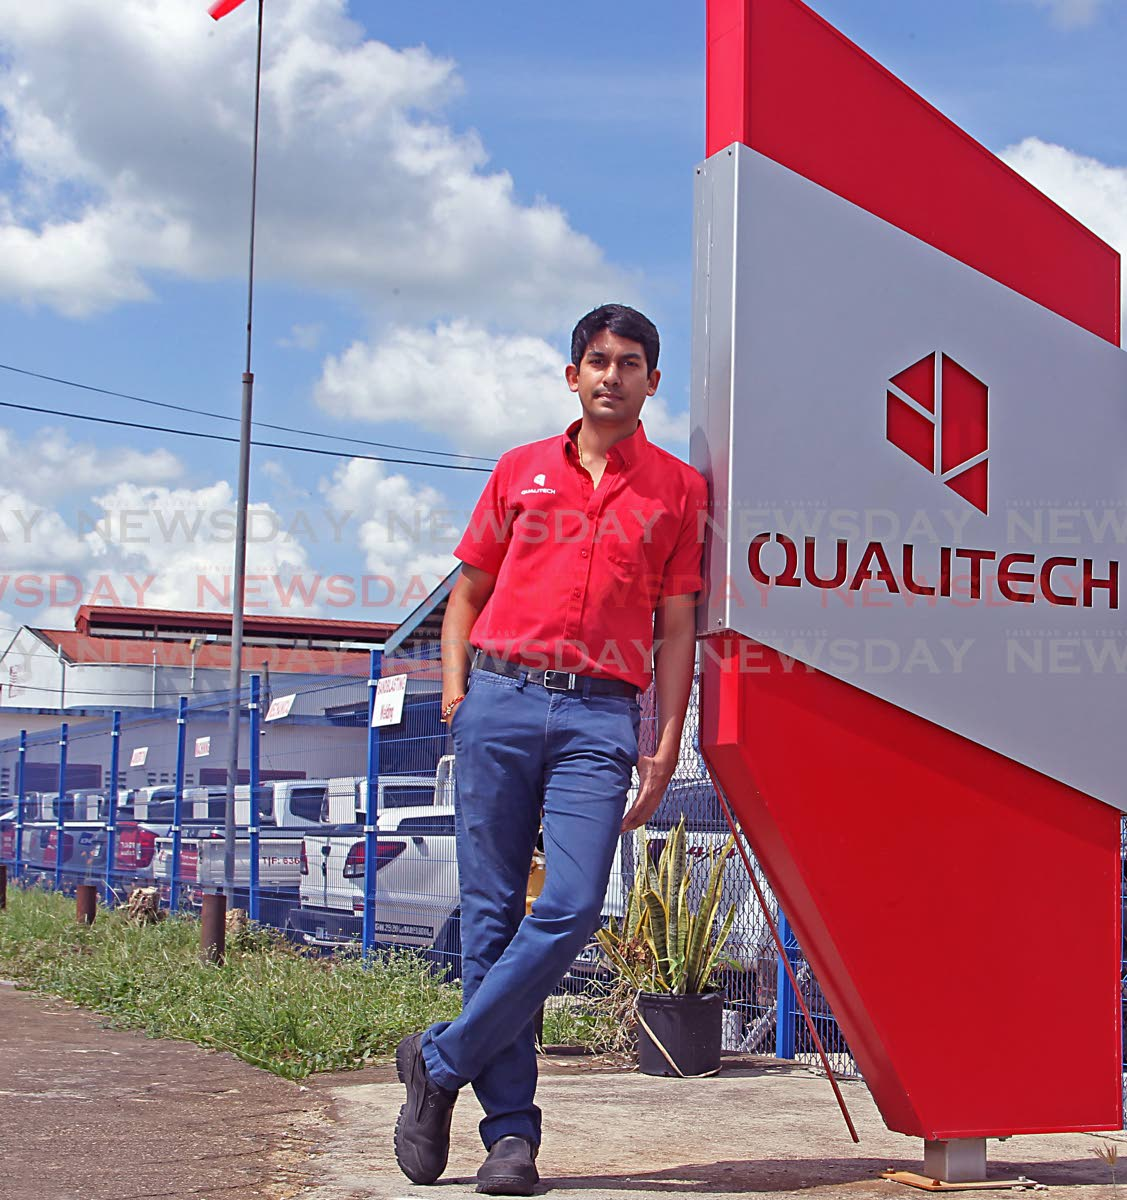 Deepak Lall, director of Qualitech Machining Services Ltd. What started as a small machine shop with three employees is now one of the region's leading engineering companies. Photo by Marvin Hamilton